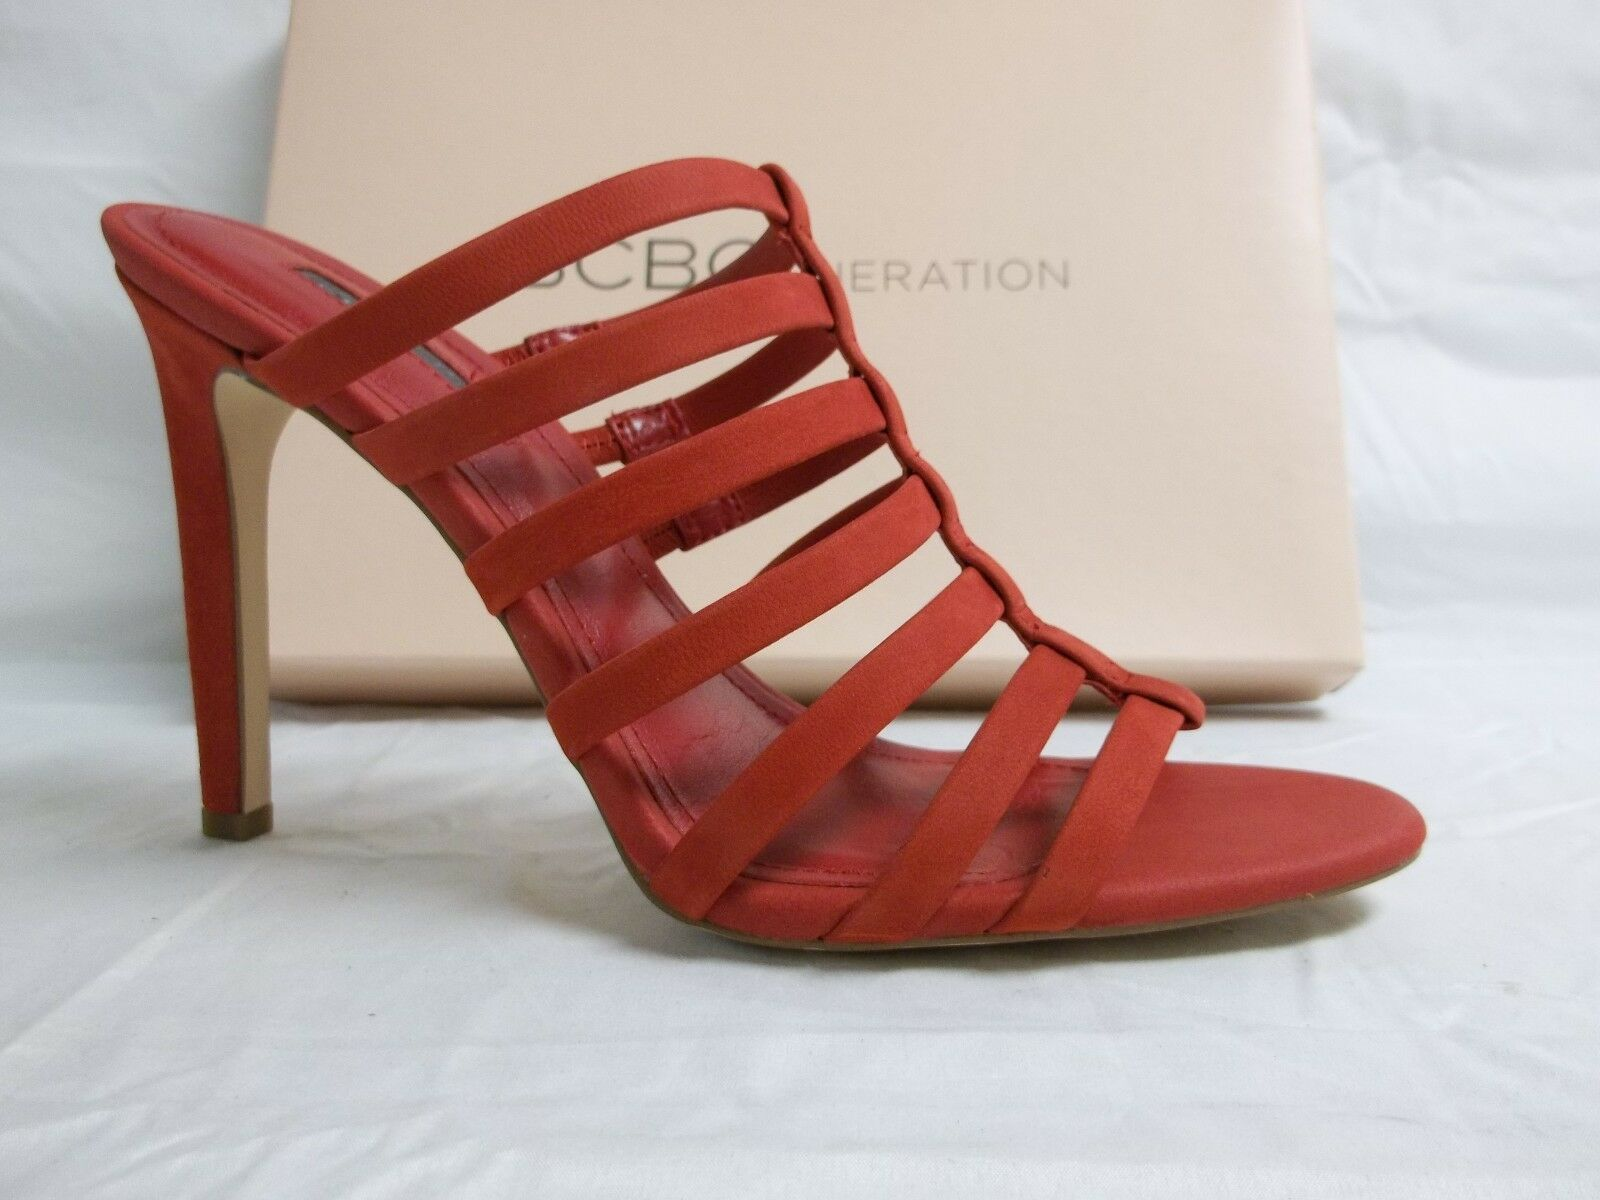 BCBGeneration BCBG Size 7.5 M Callie Red Leather Heels New Womens shoes NWOB